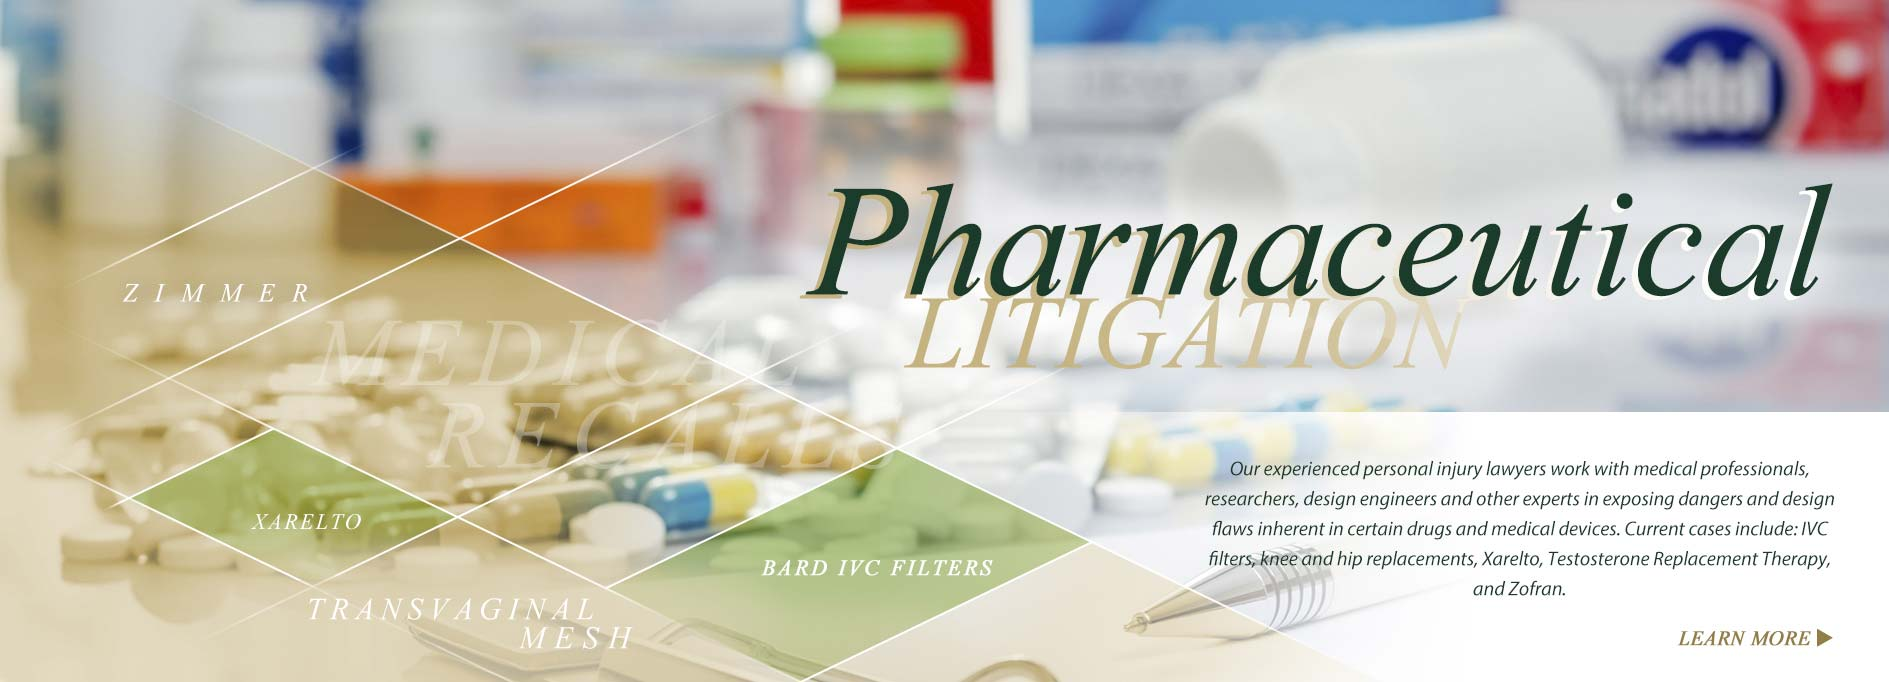 Pharmaceutical Litigation Attorney